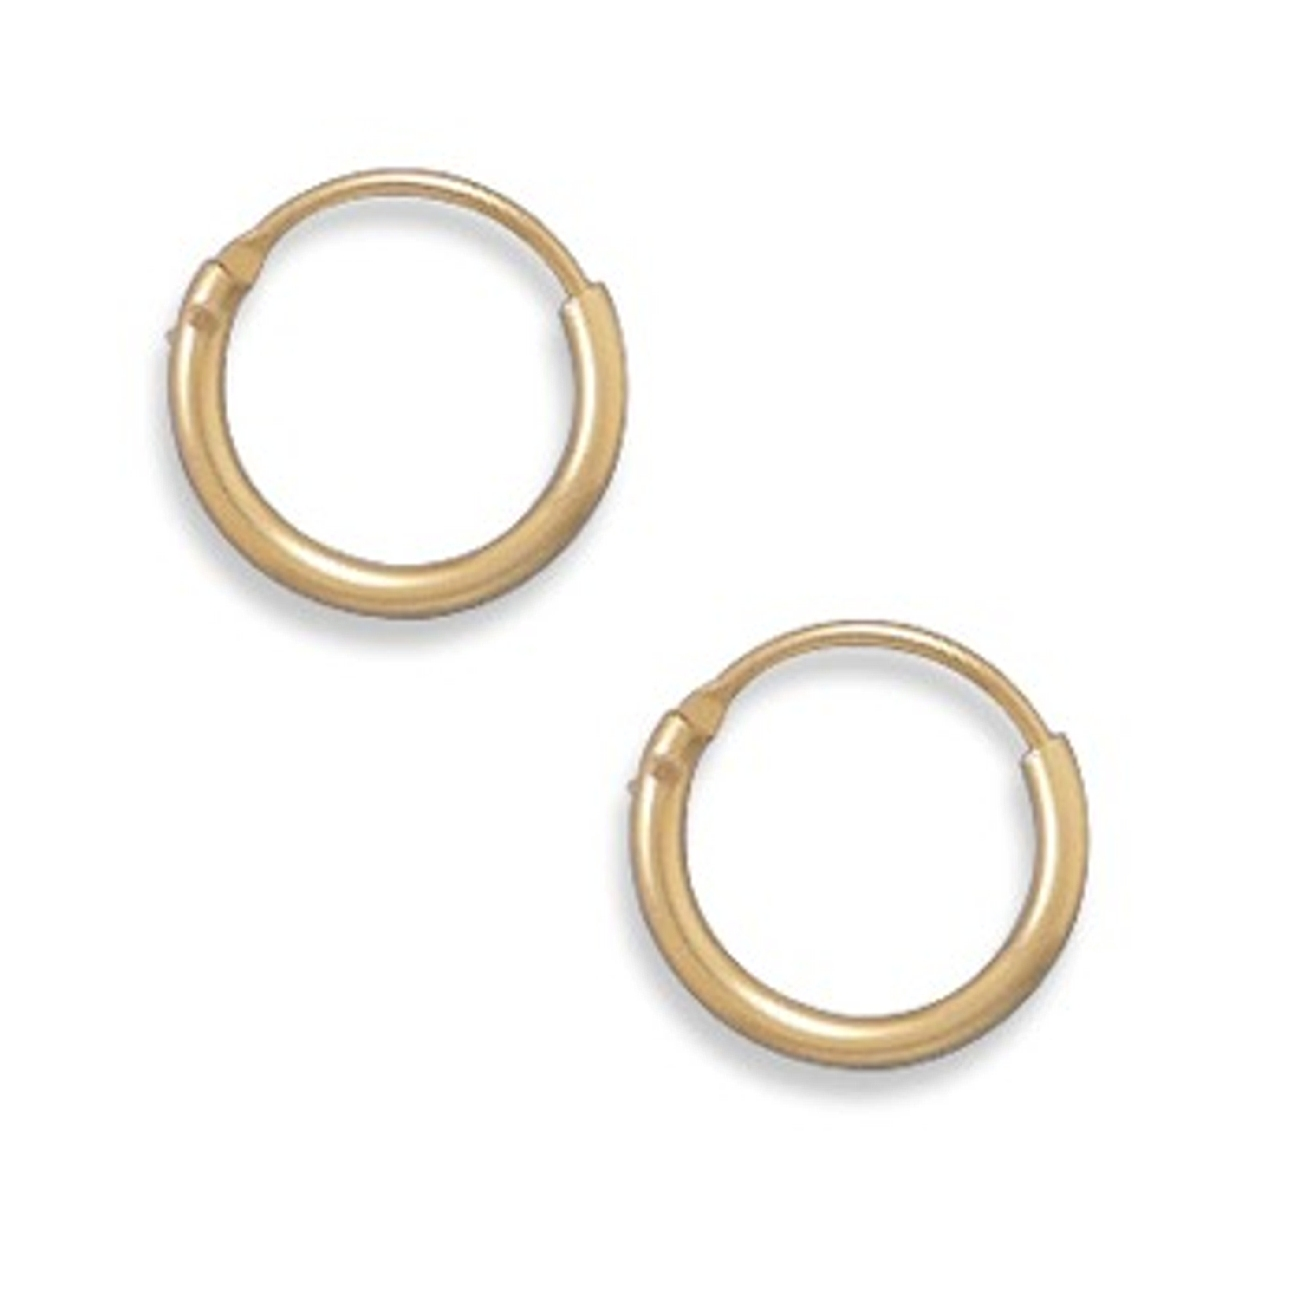 11mm Diameter 12/20 Gold Filled Endless Hoop Earrings